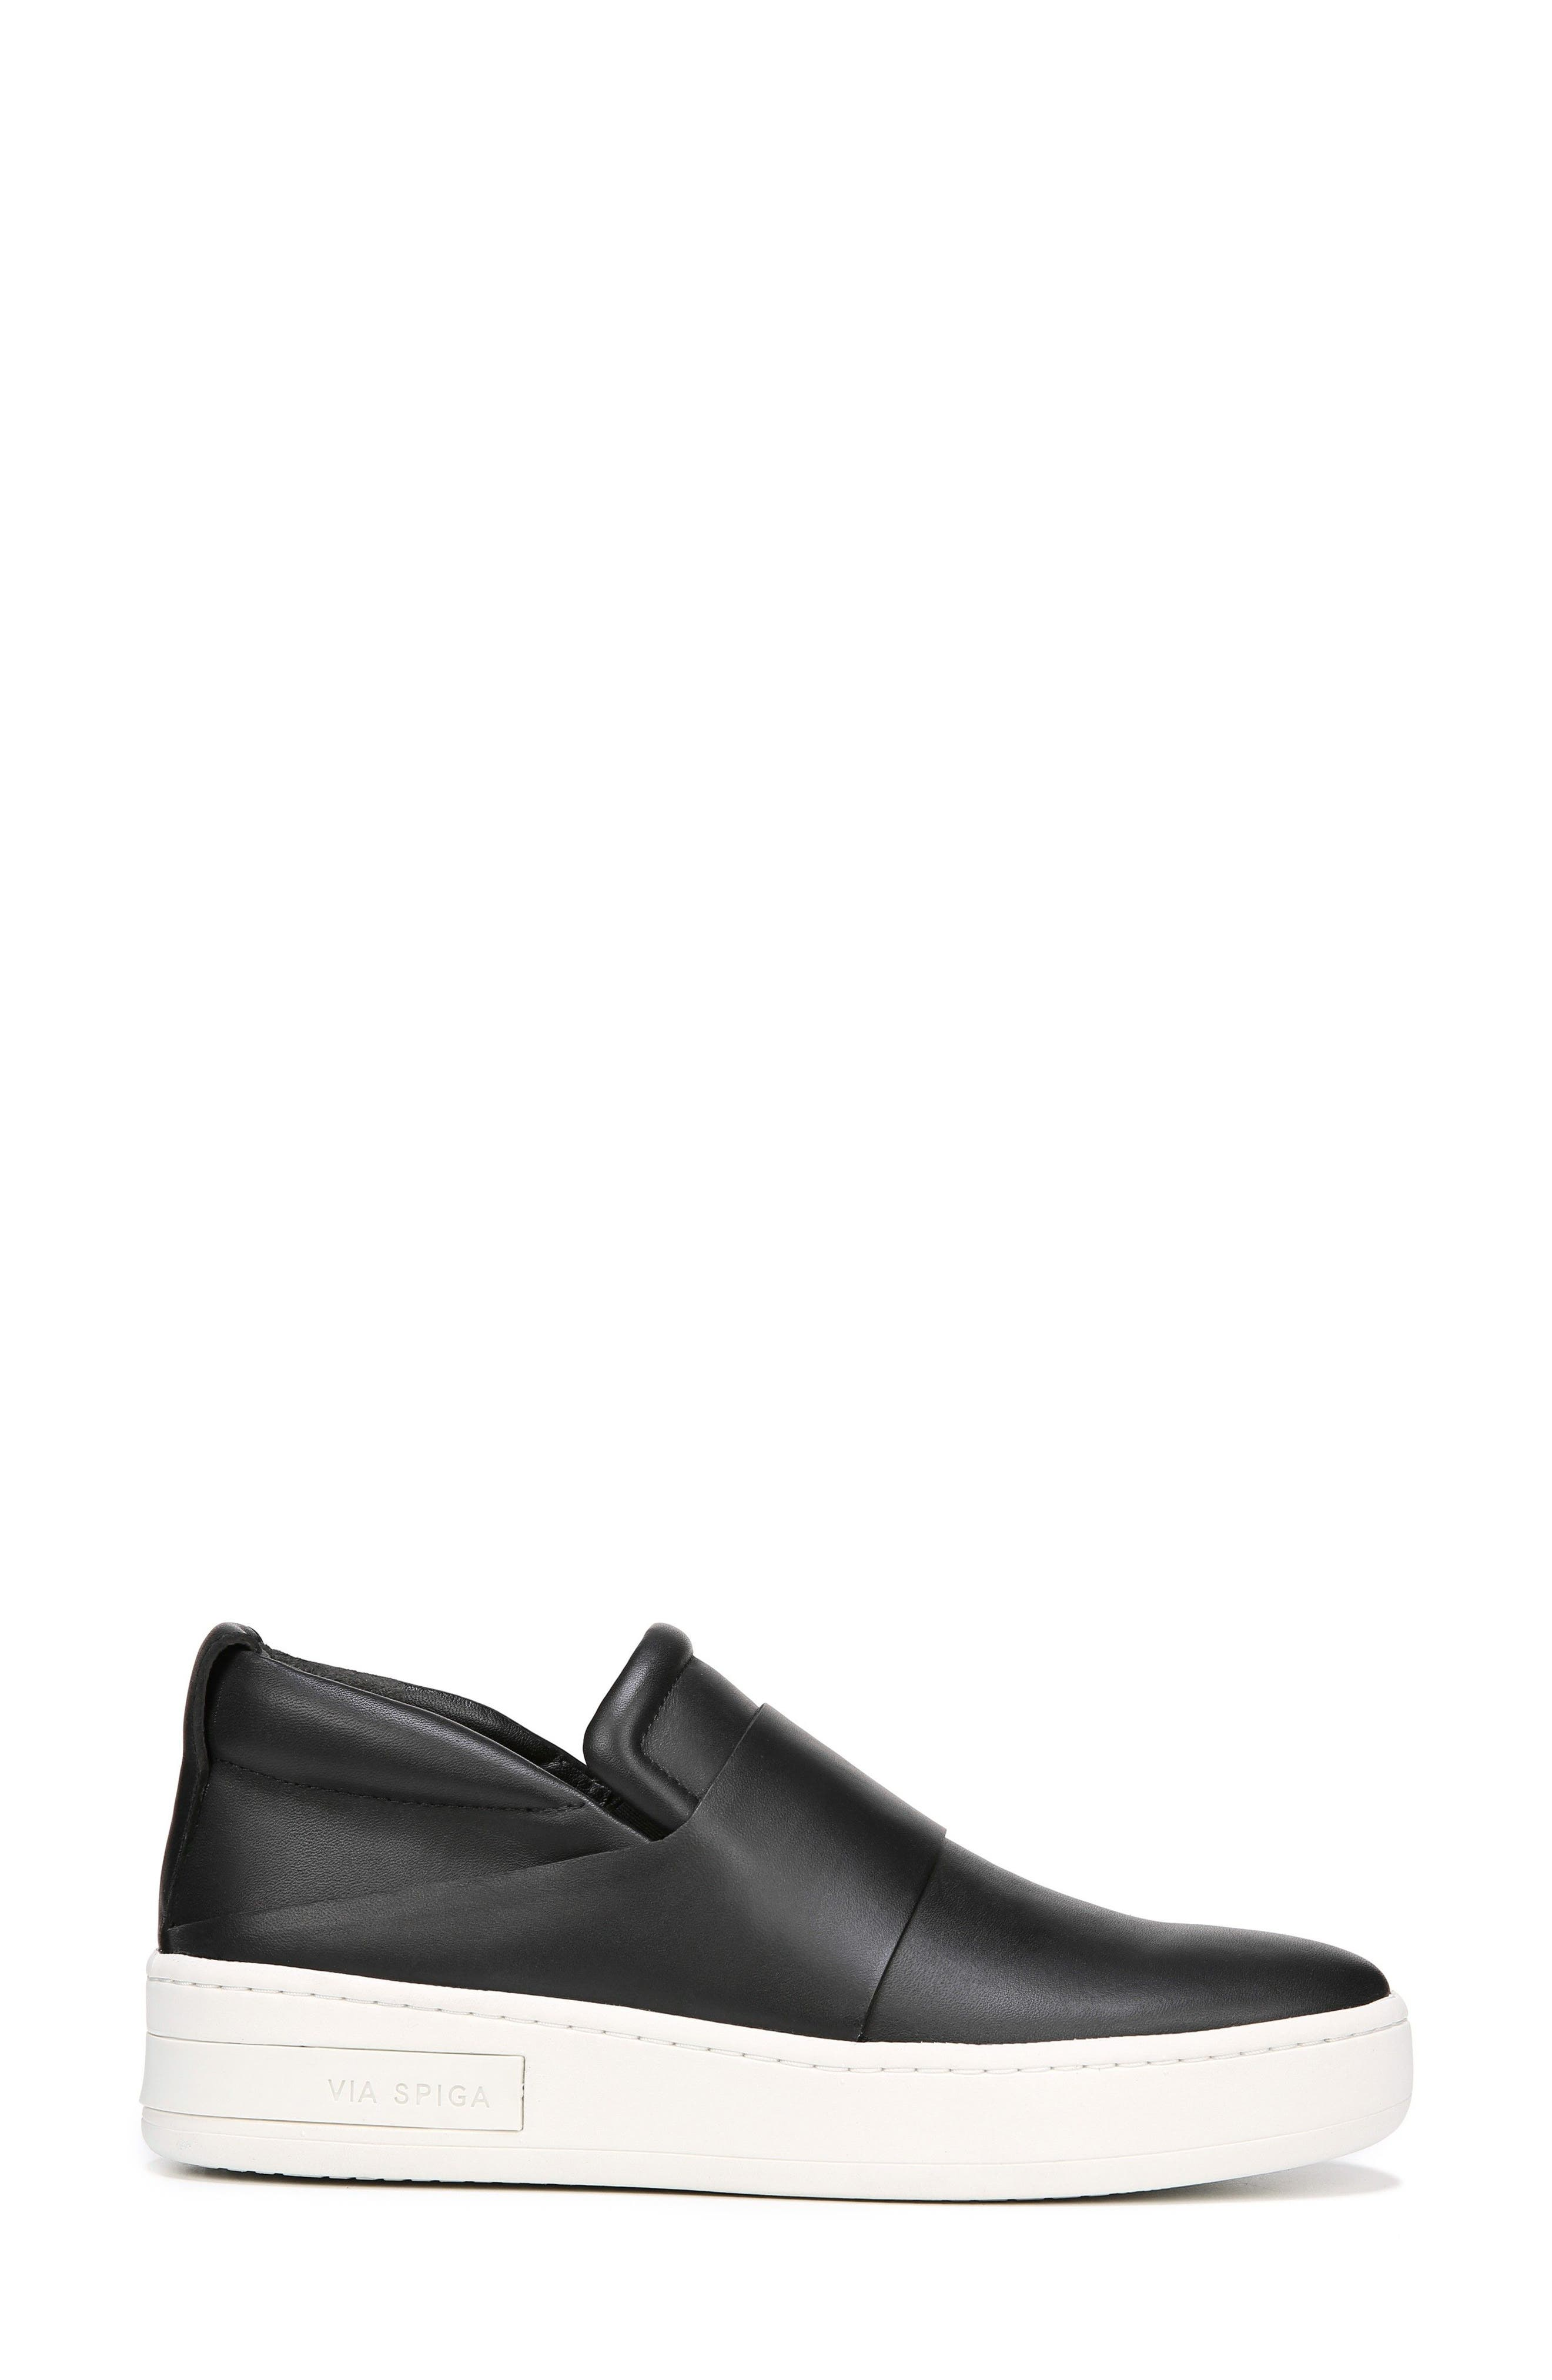 Ryder Slip-On Sneaker,                             Alternate thumbnail 3, color,                             BLACK LEATHER